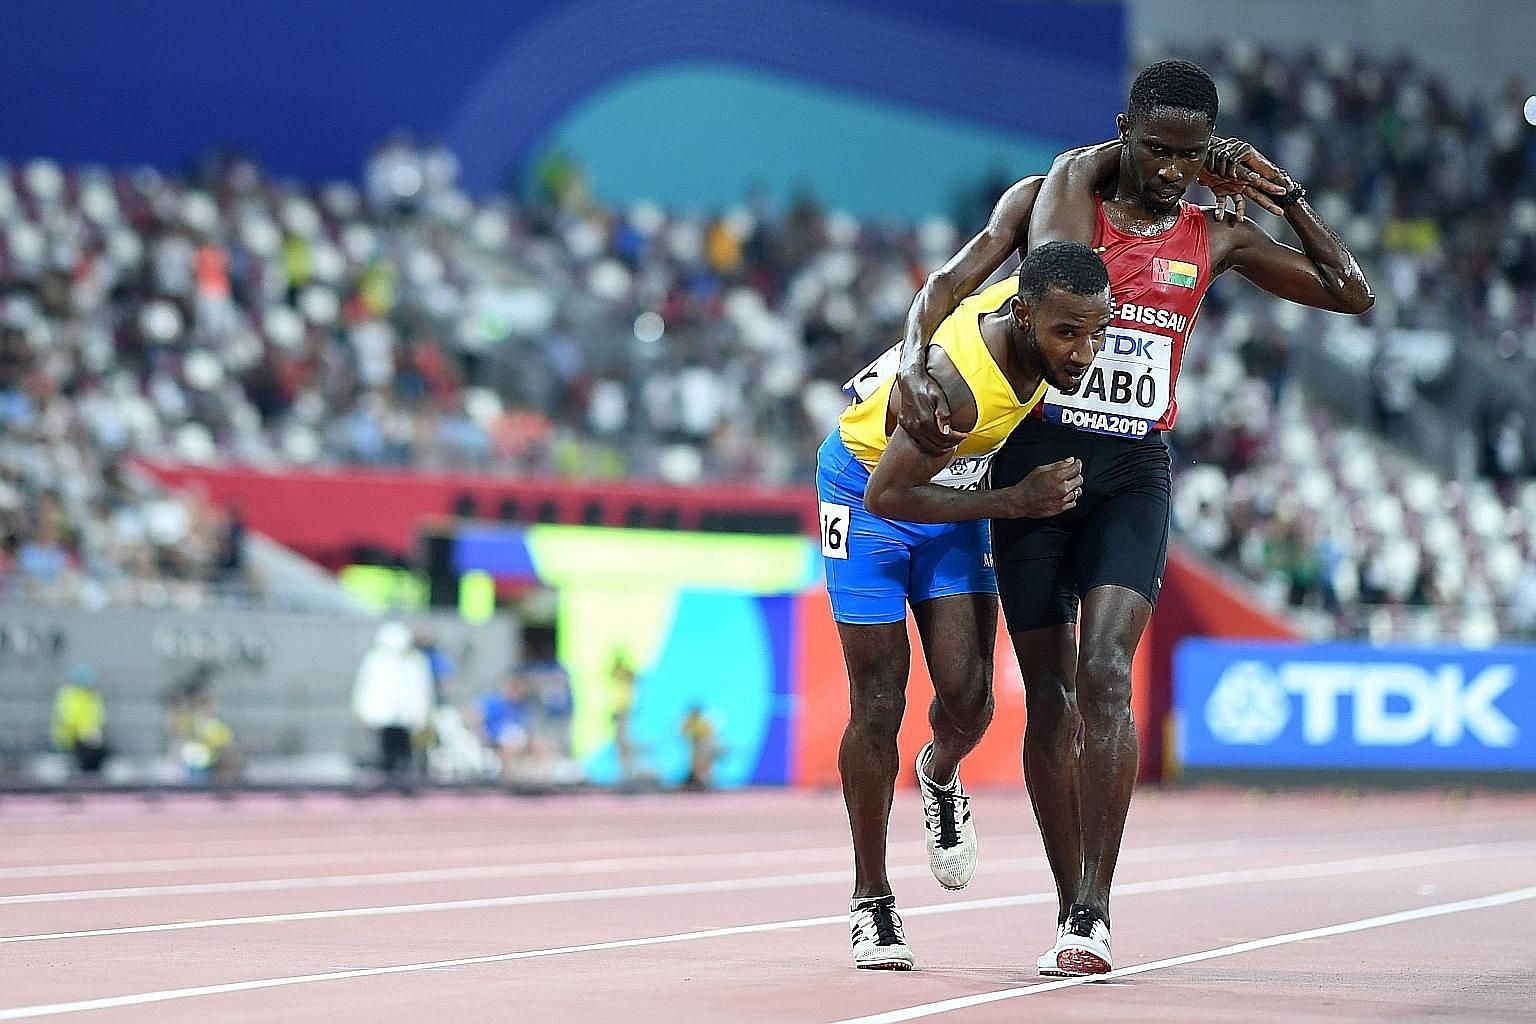 Guinea-Bissau's Braima Suncar Dabo helping Aruba's Jonathan Busby to the finish line in the men's 5,000m heats at the world athletics championships in Doha last Friday. Dabo clocked 18min 10.87sec and did not progress while his heat-affected rival wa